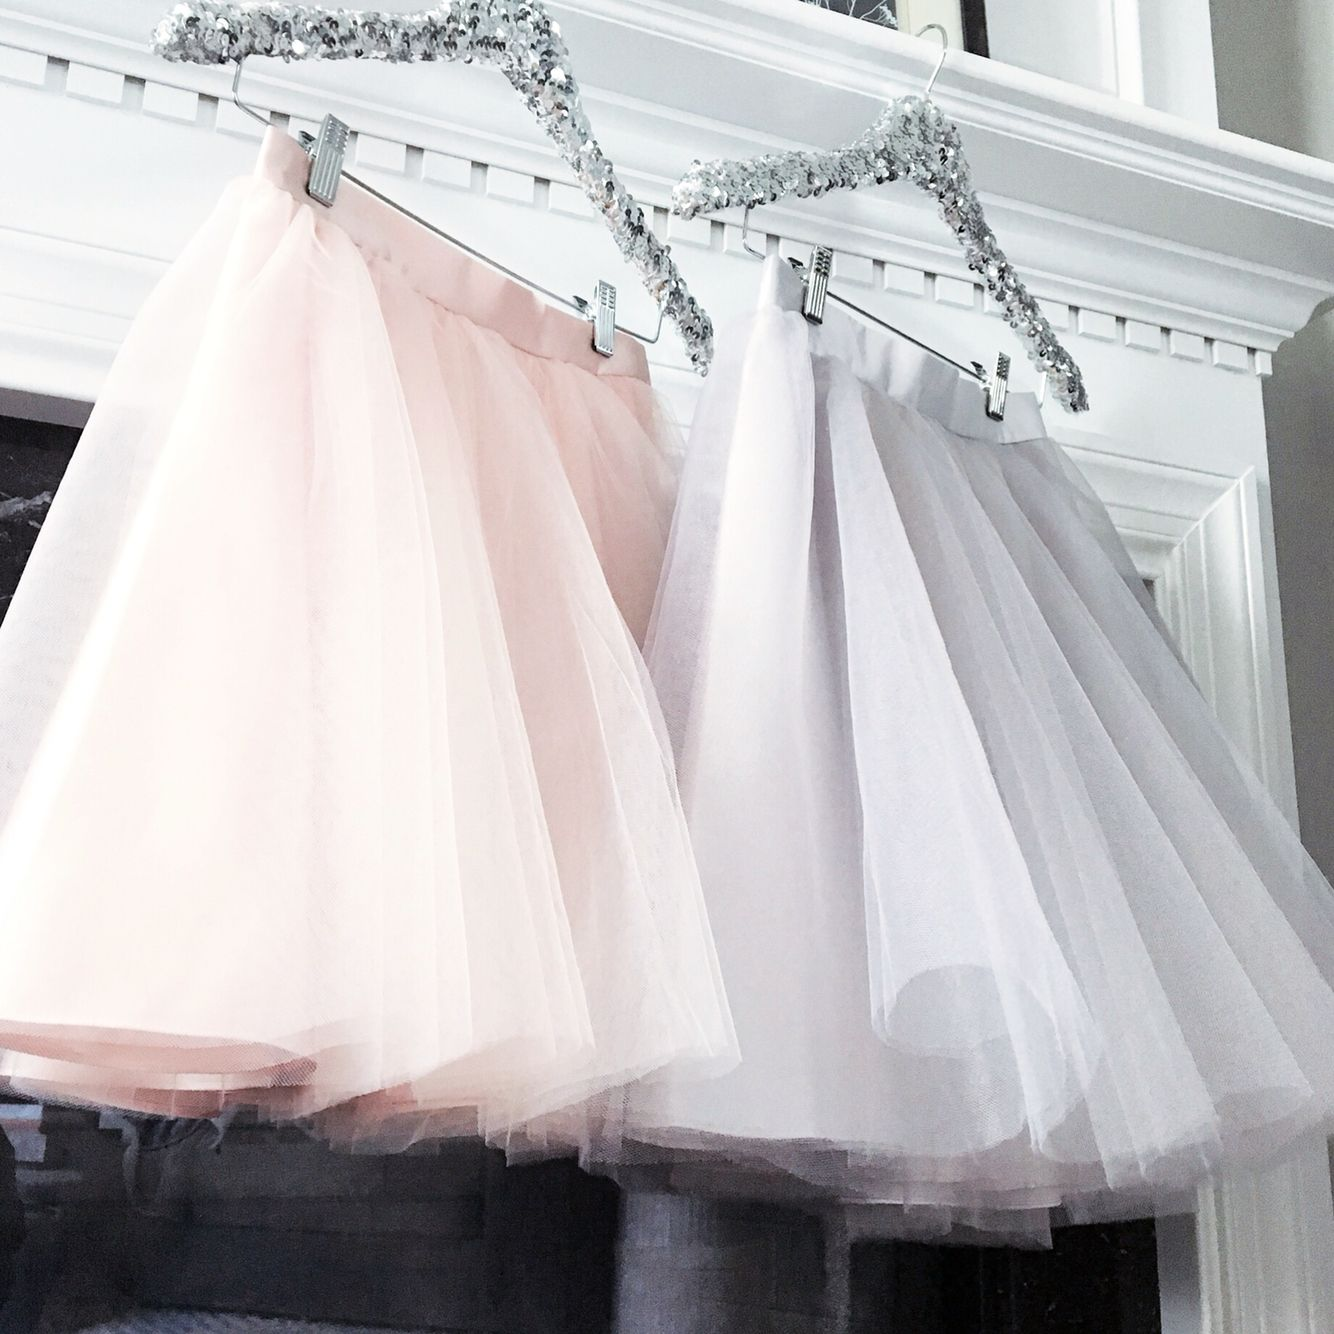 Blush pink and pale grey tulle skirts by Bliss Tulle